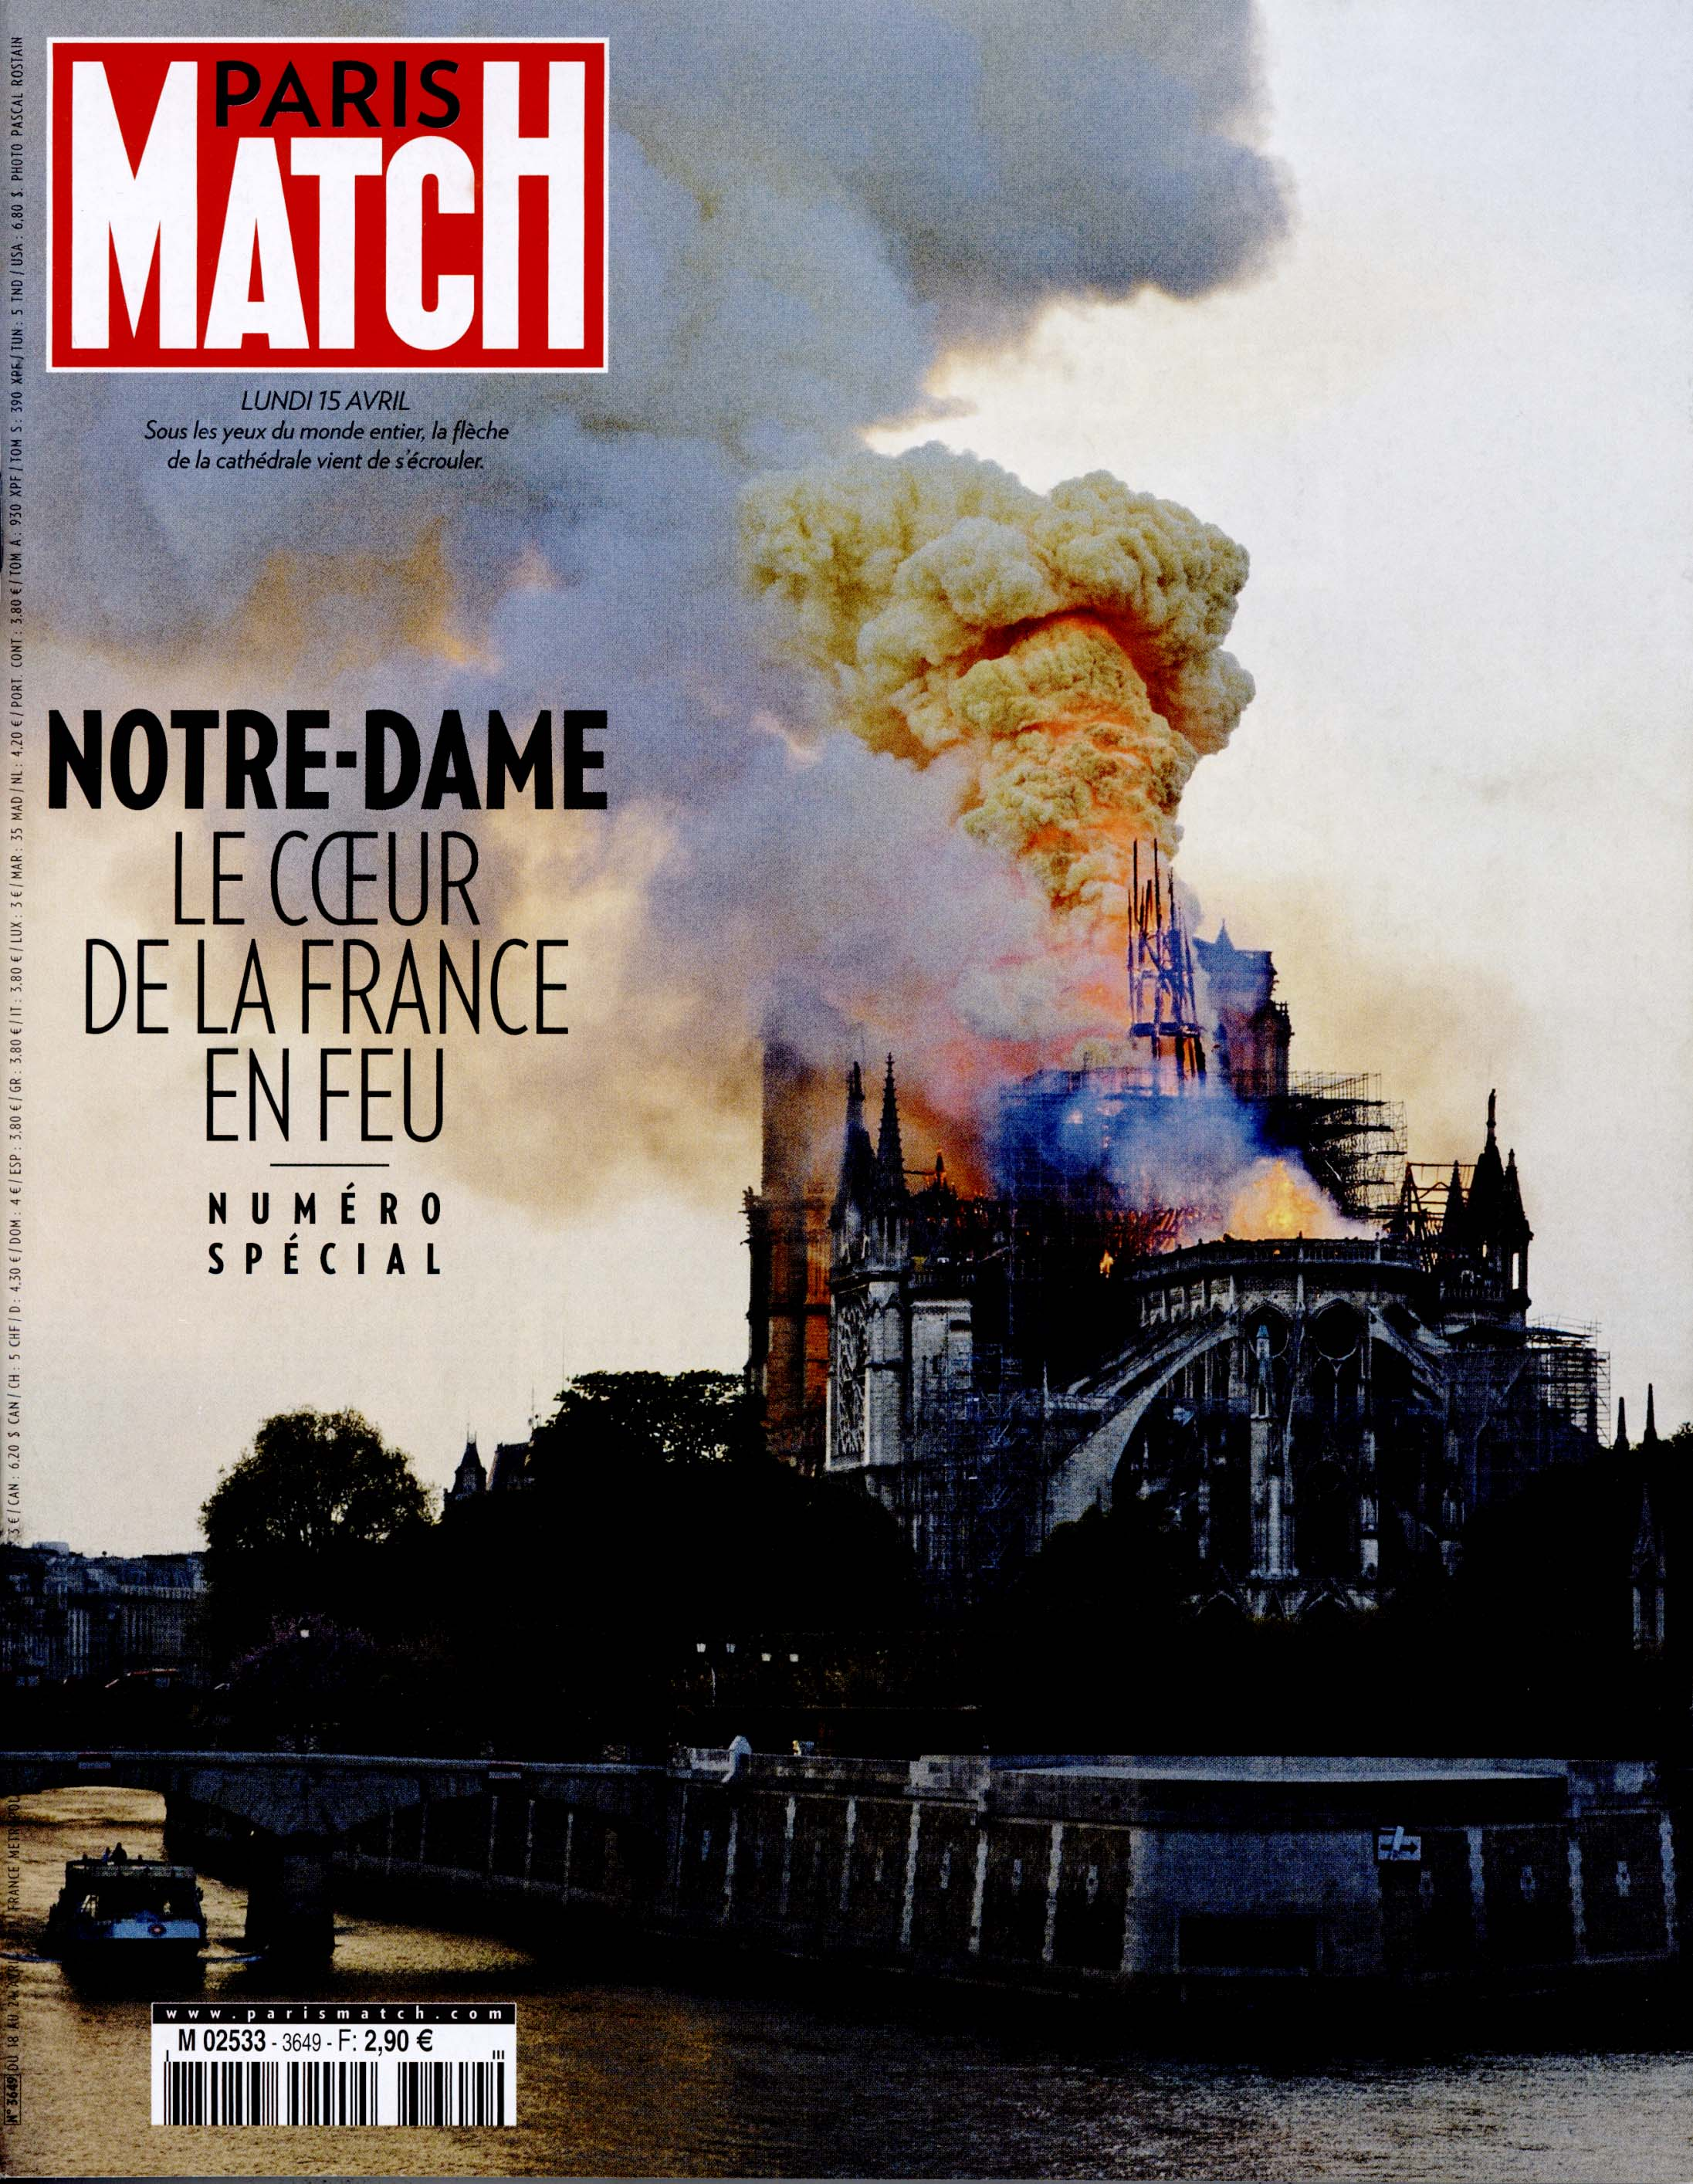 PARIS MATCH 18 apr 19 TATIANA VERSTRAETEN cover.jpg